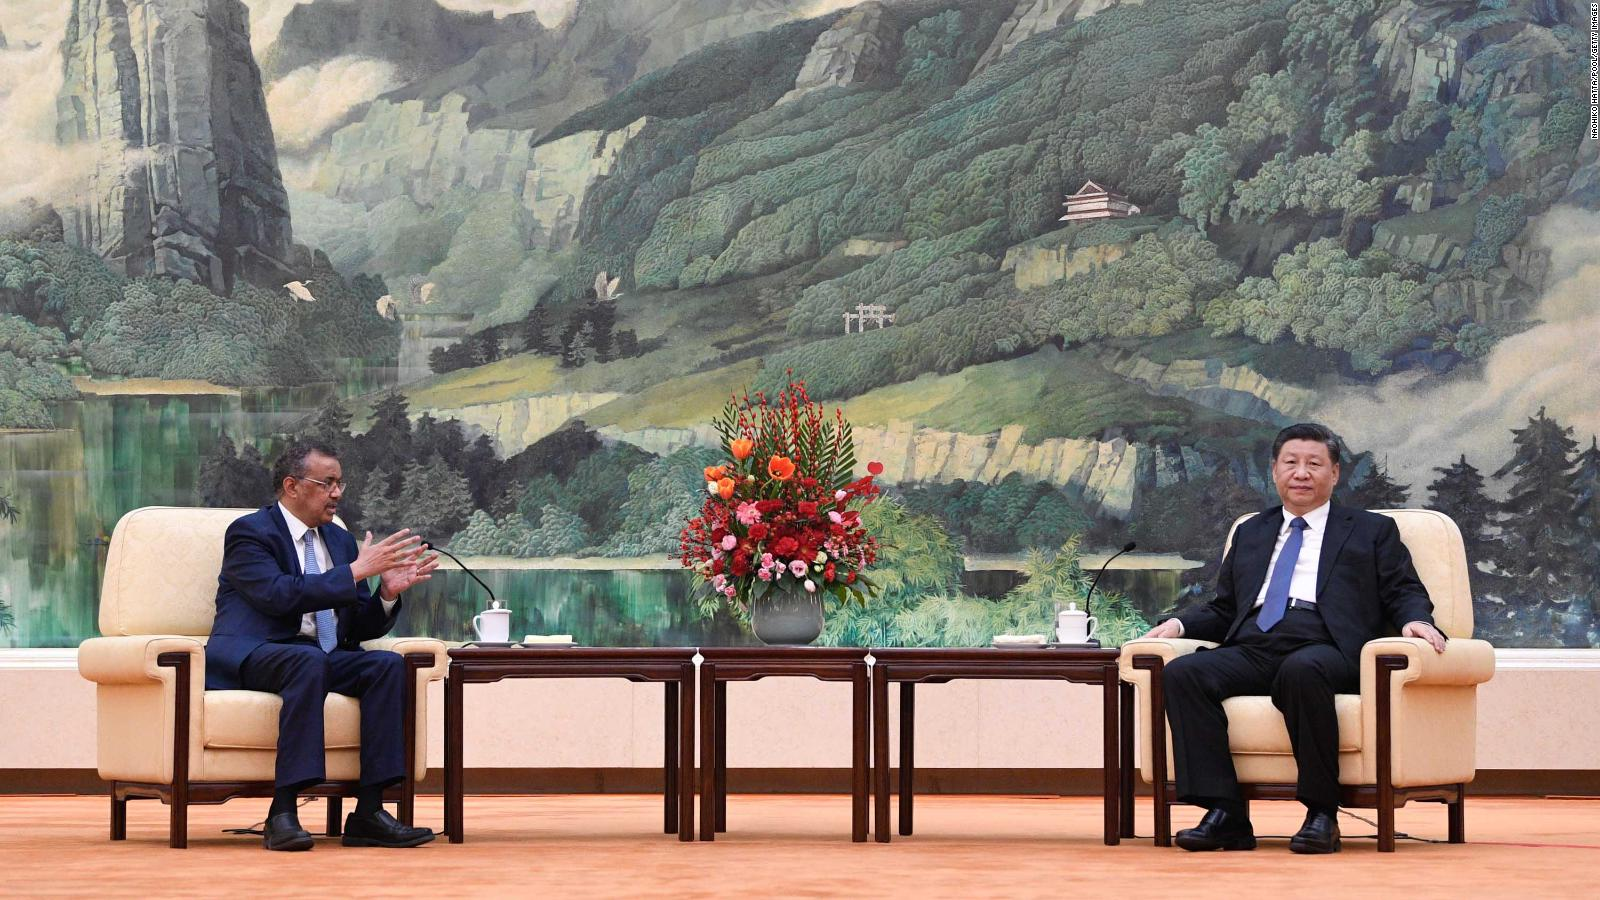 Tedros Adhanom, Director General of the World Health Organization, attends a meeting with Chinese President Xi Jinping at the Great Hall of the People, on January 28, 2020 in Beijing, China.